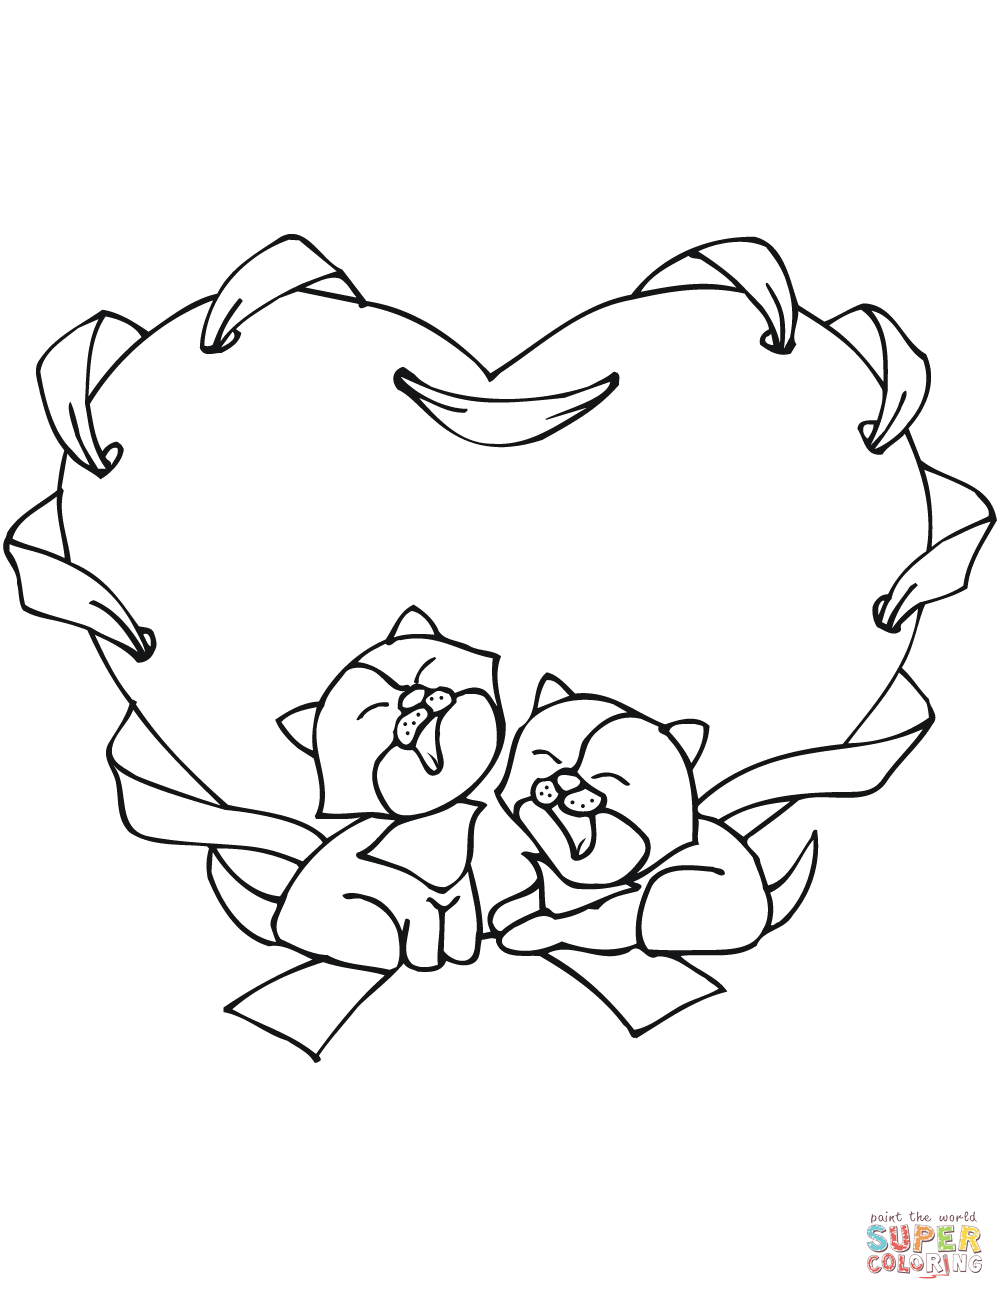 1005x1300 Love Birds Coloring Page Free Printable Coloring Pages